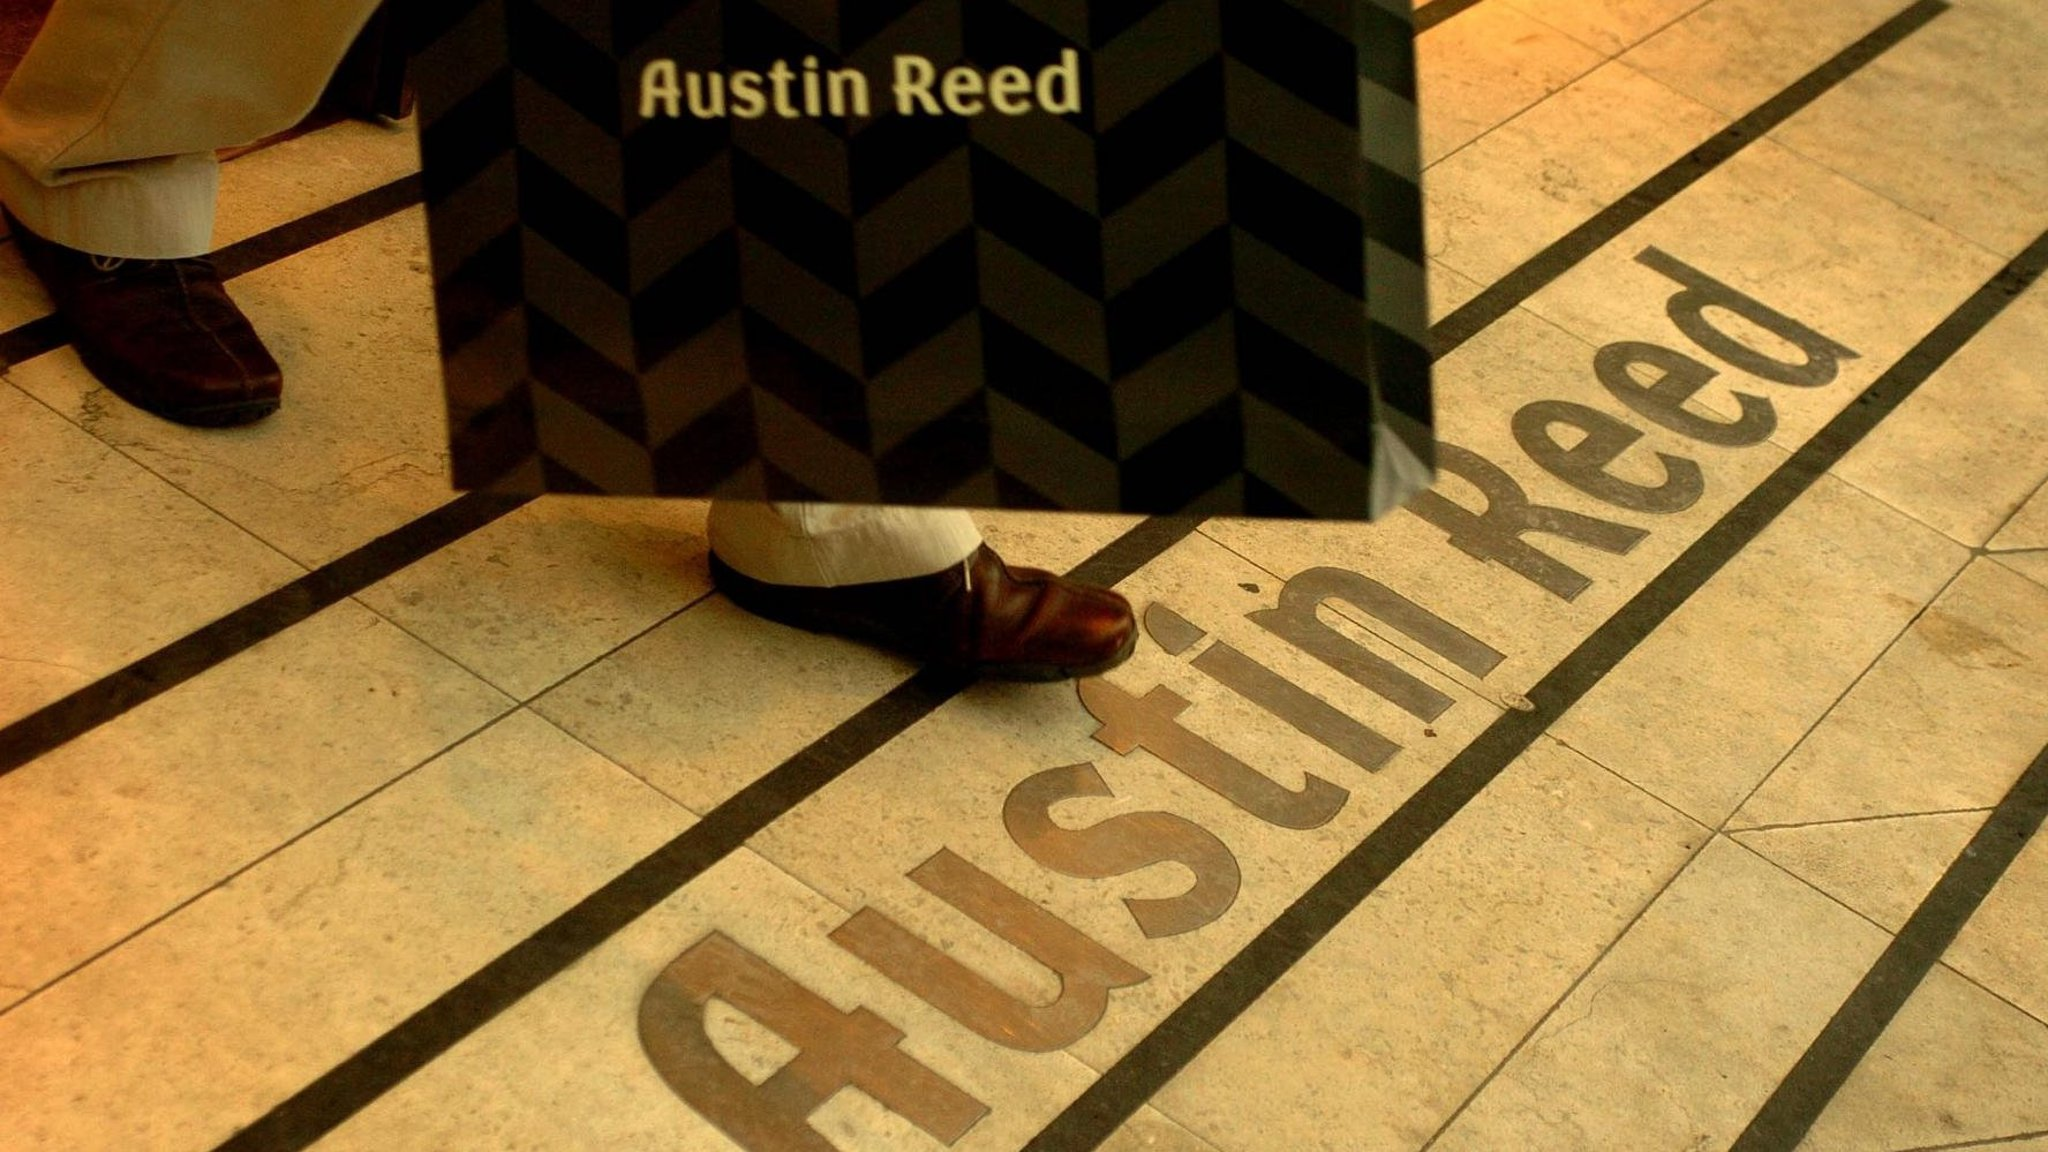 Austin Reed Set For Return To The High Street Financial Times